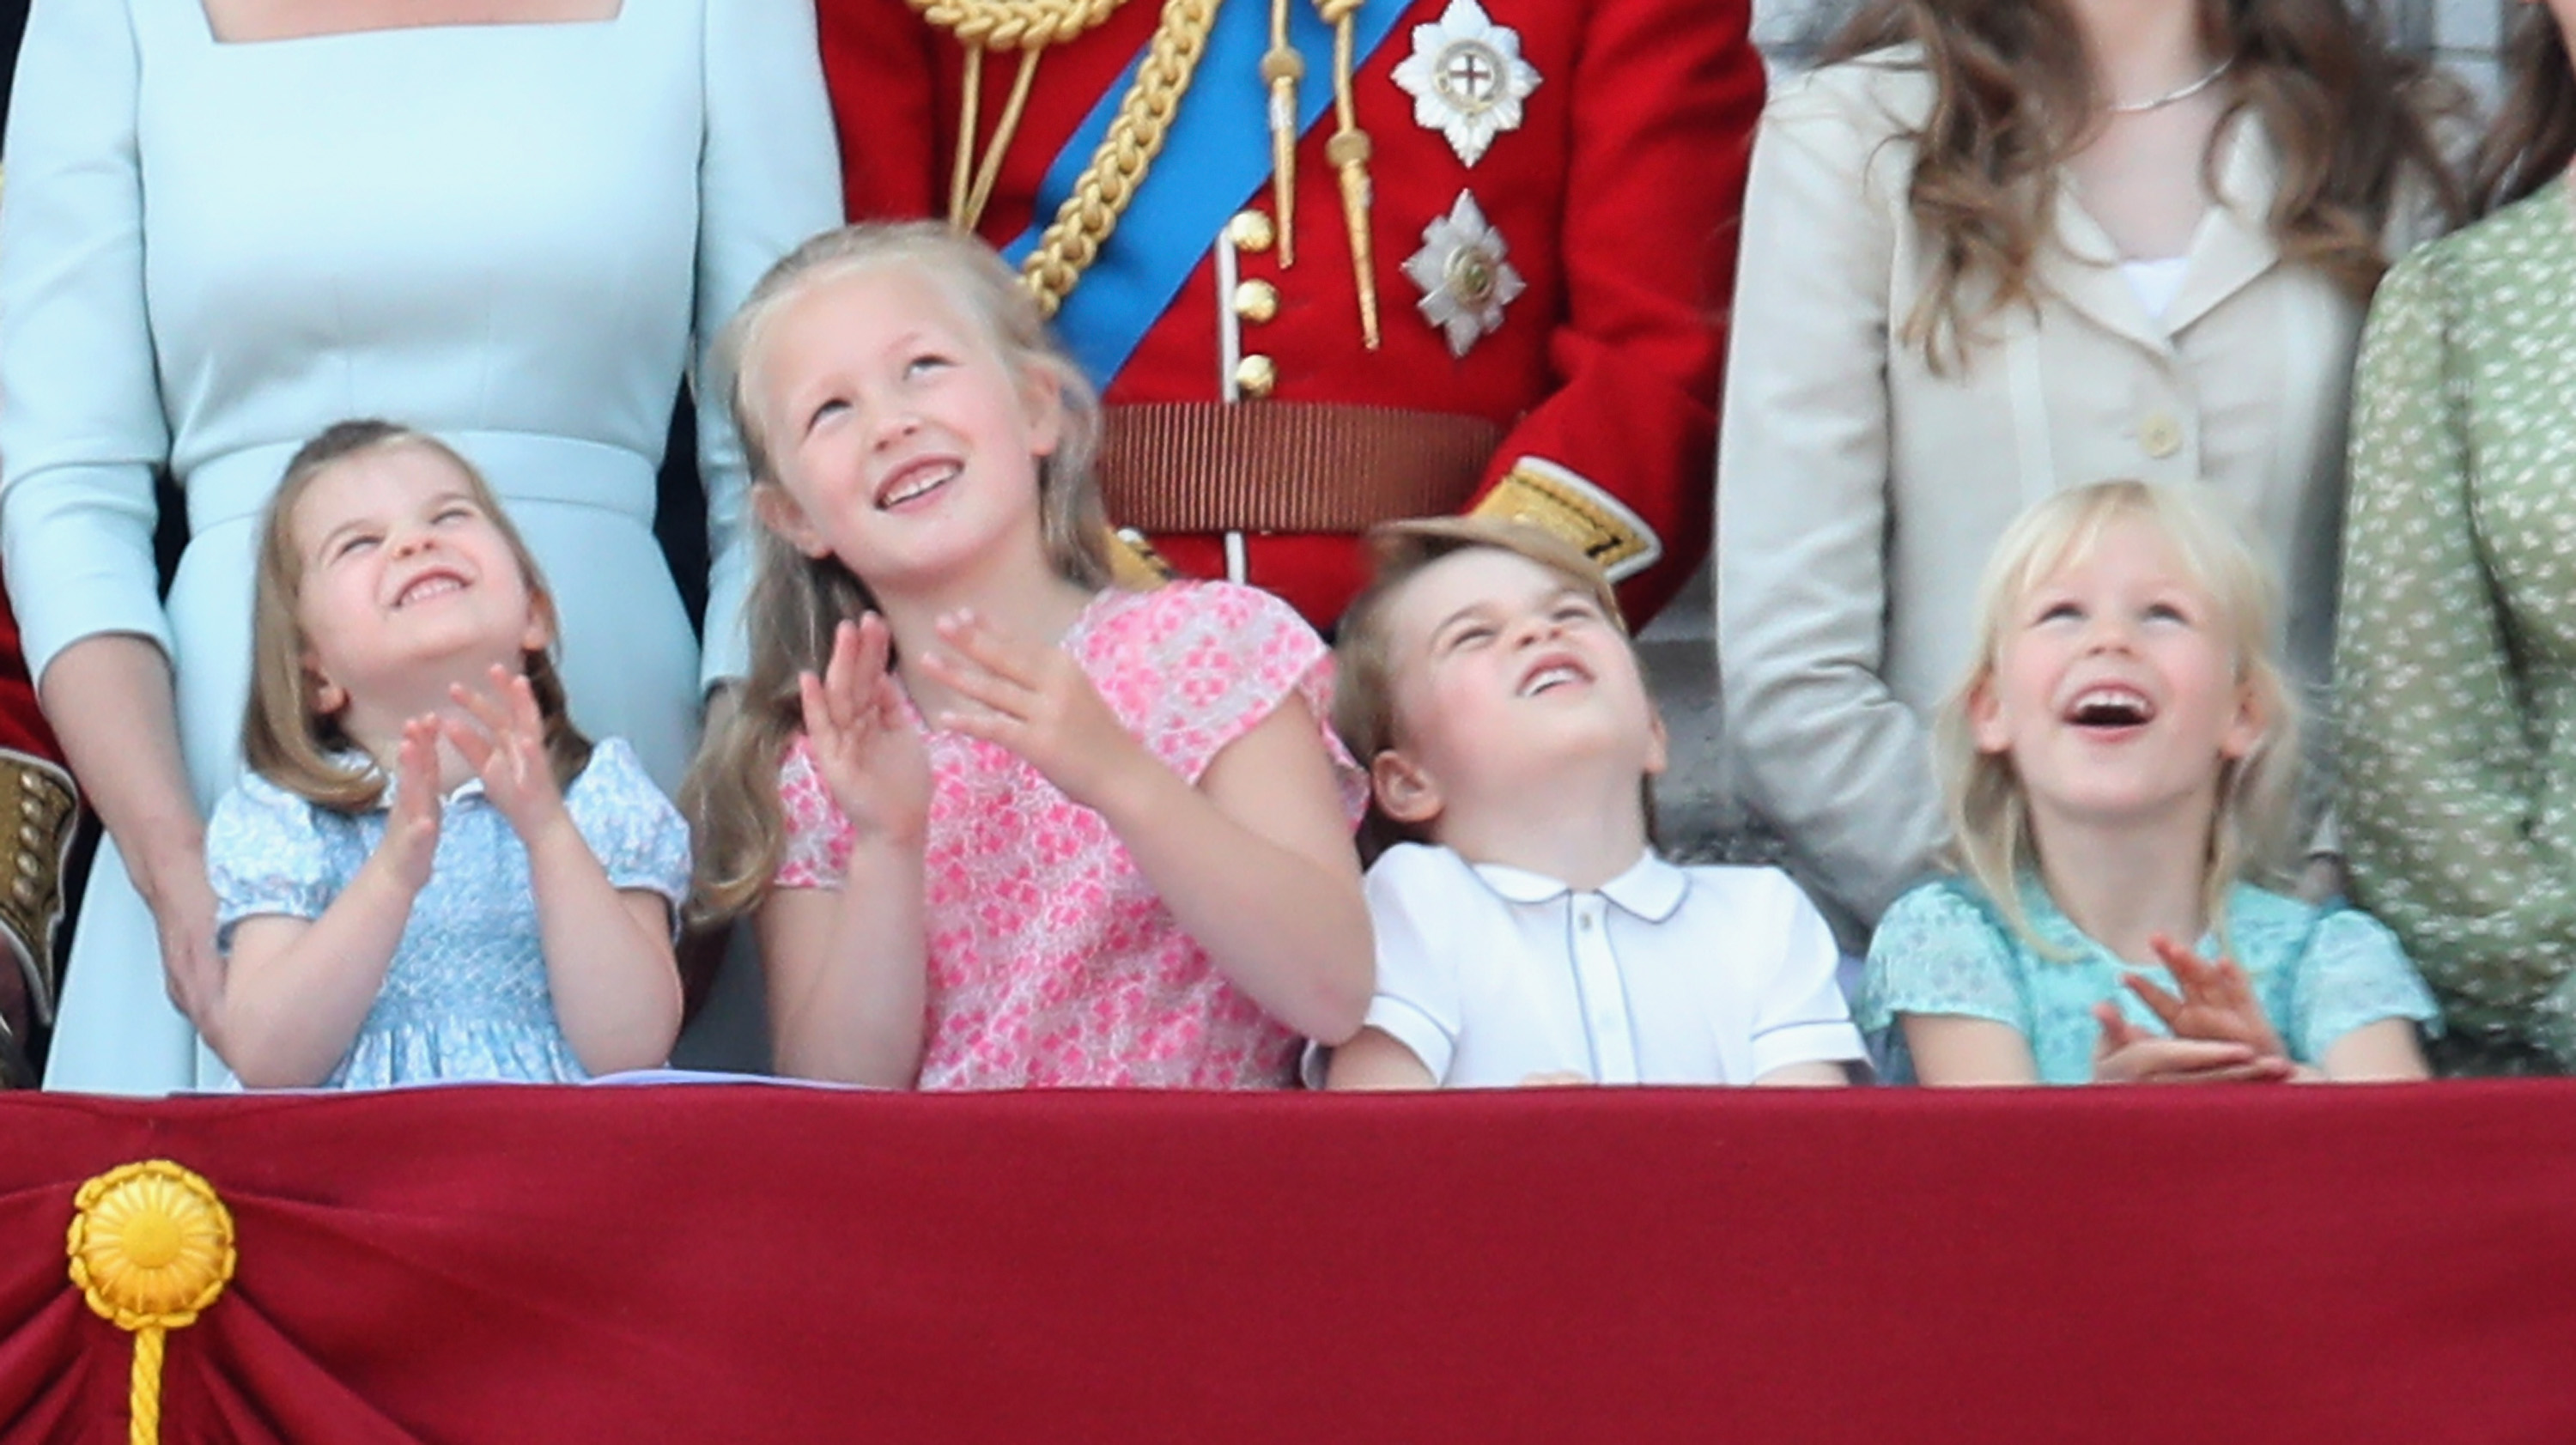 Princess Charlotte of Cambridge, Savannah Phillips, Prince George of Cambridge and Isla Phillips watch the flypast on the balcony of Buckingham Palace during Trooping The Colour on June 9, 2018, in London, England. (Getty Images)